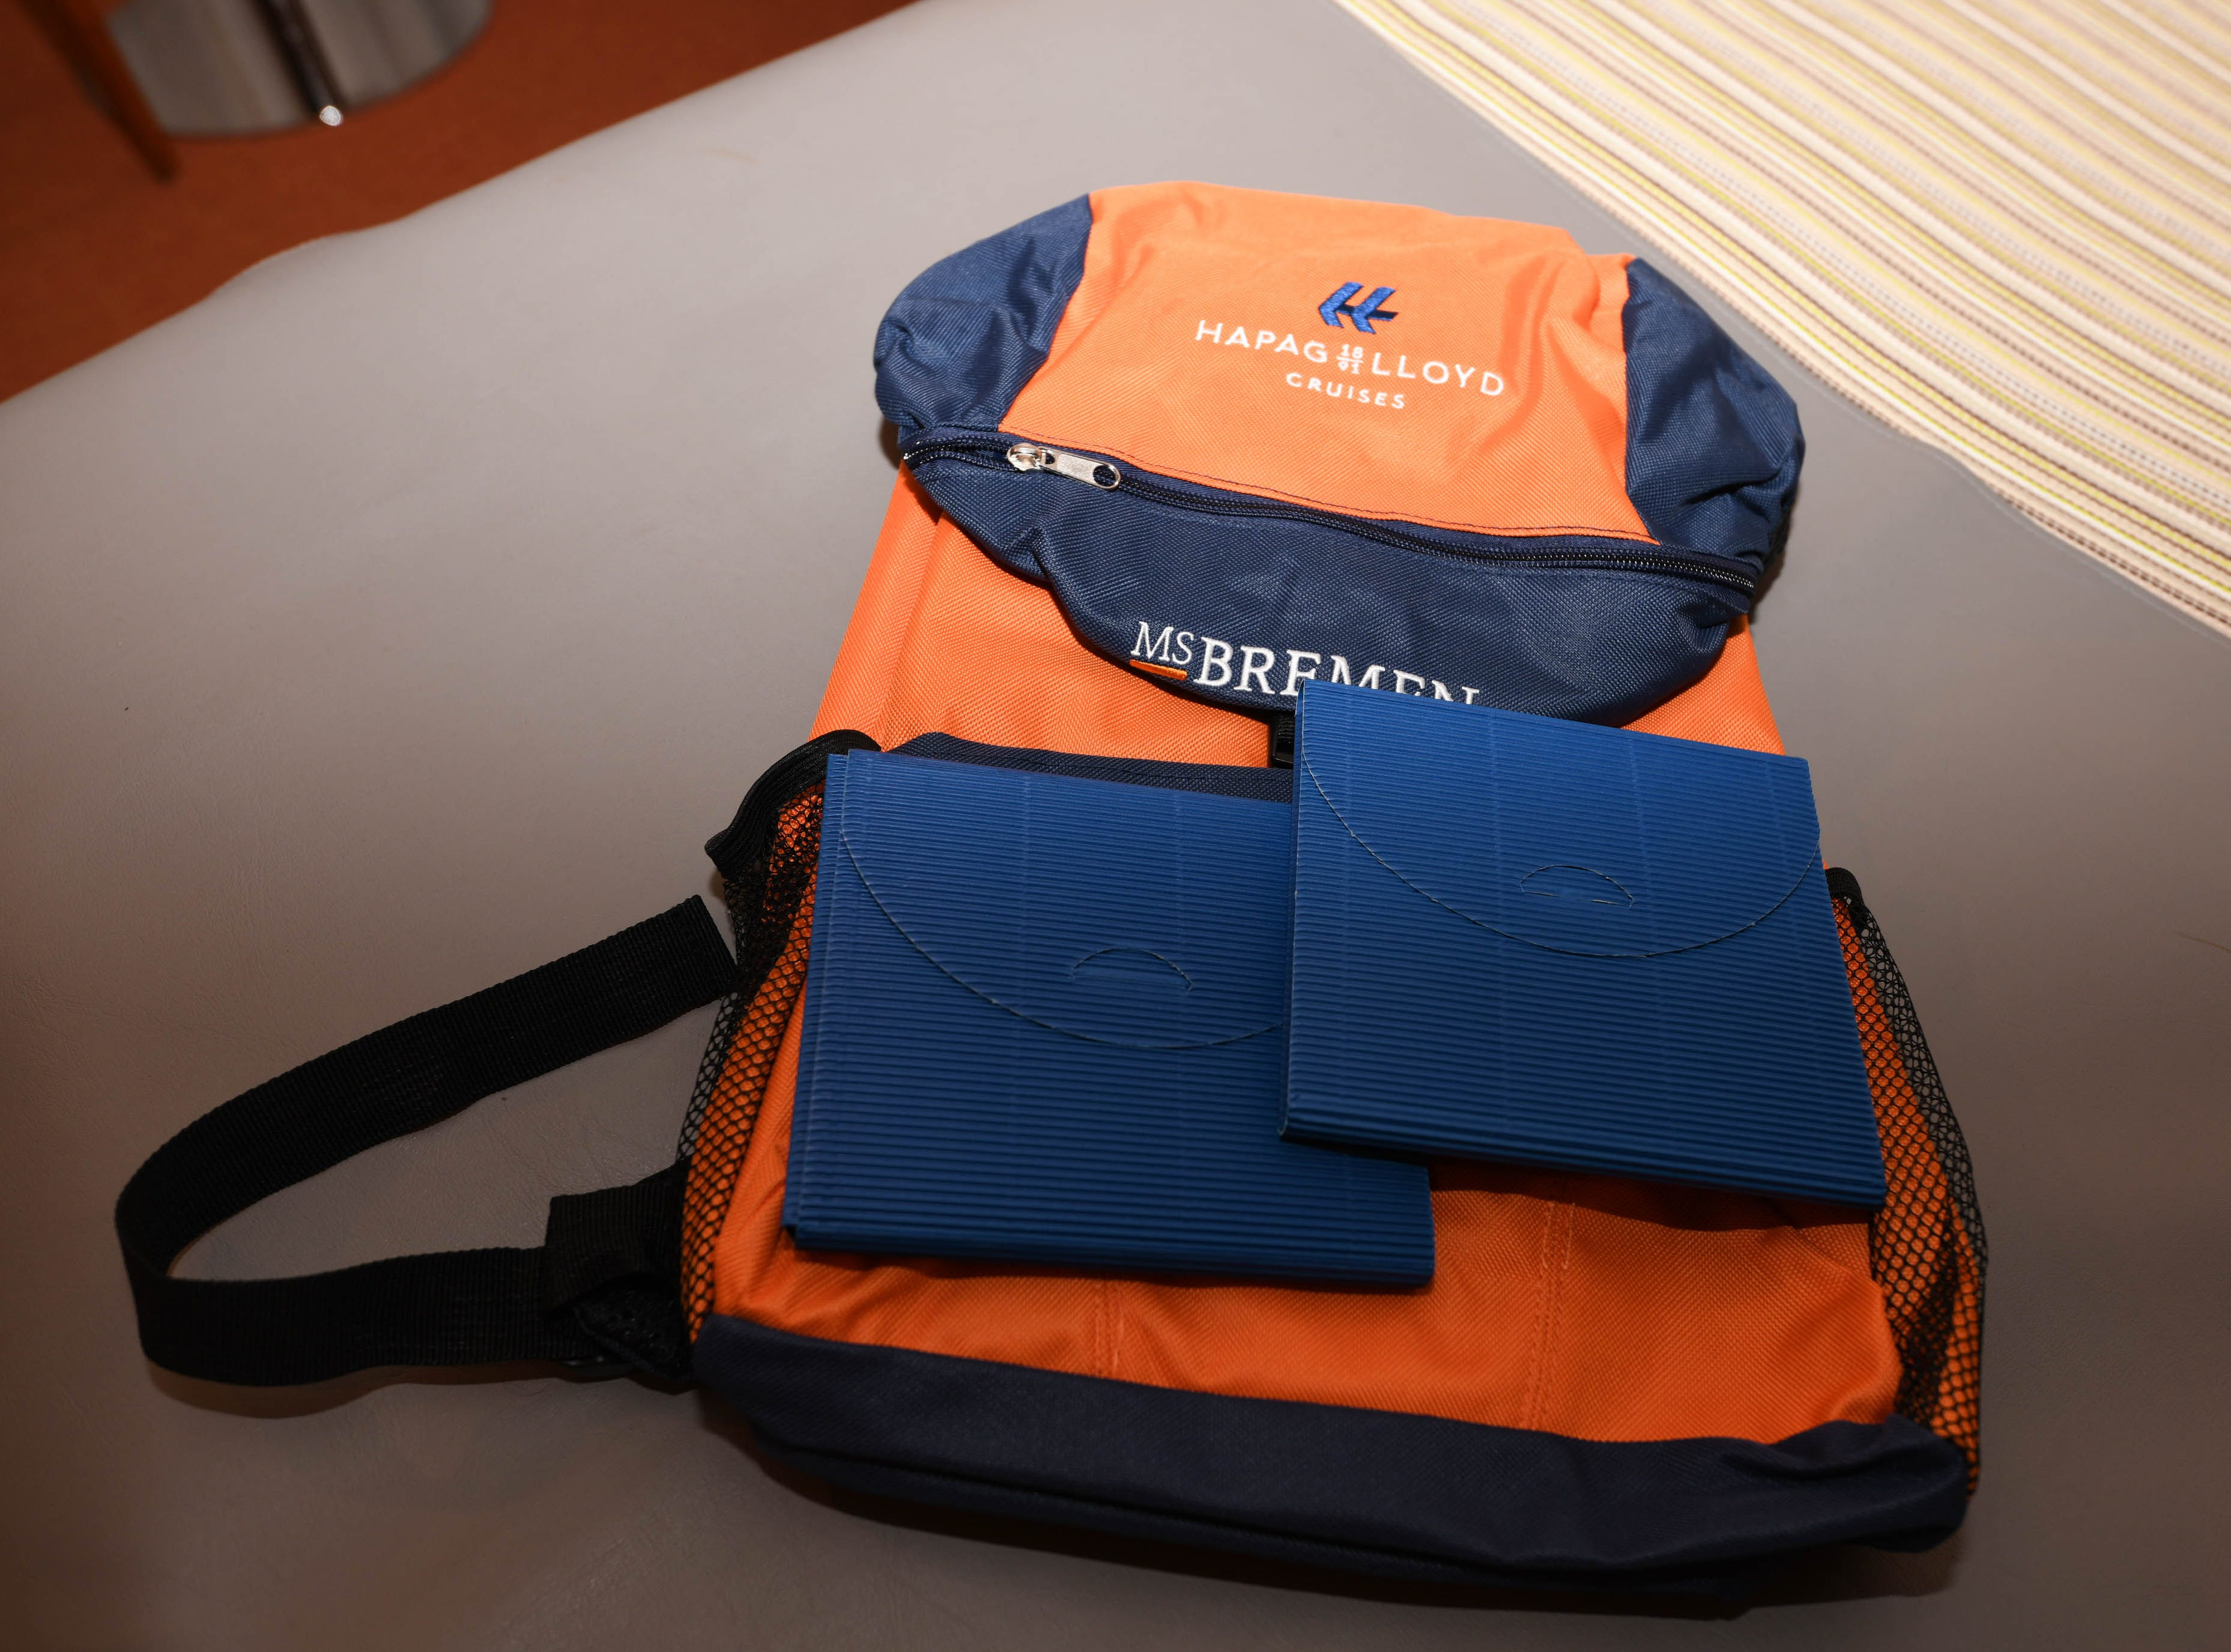 Passengers on Bremen expedition cruises receive a Hapag-Lloyd Cruises backpack upon arrival to use during Zodiac landings.